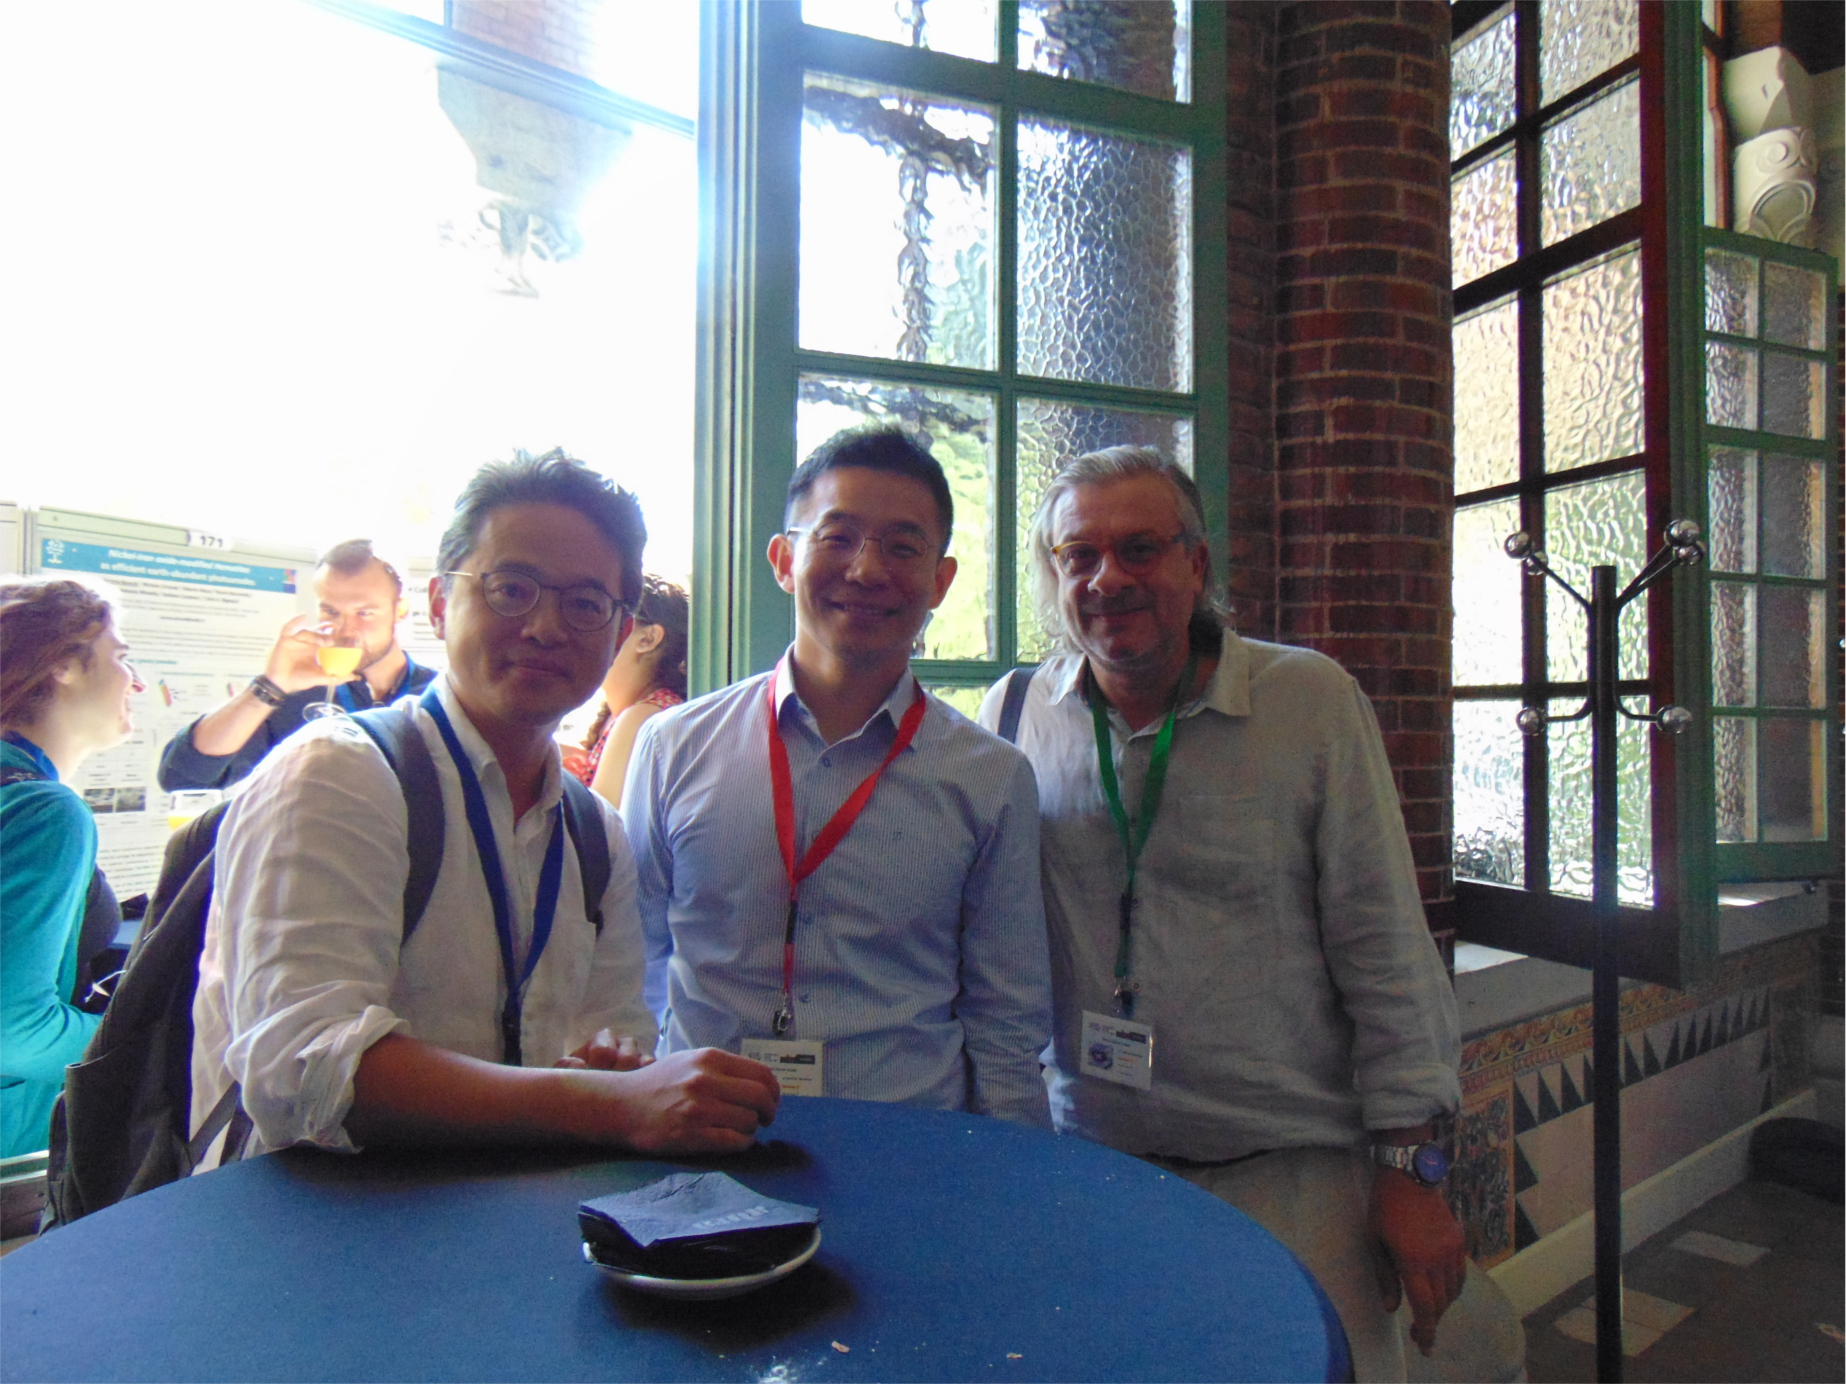 Hyun Suk Jung, Ki Tae Nam and Juan Bisquert at nanoGe Fall Meeting 2017 in Barcelona